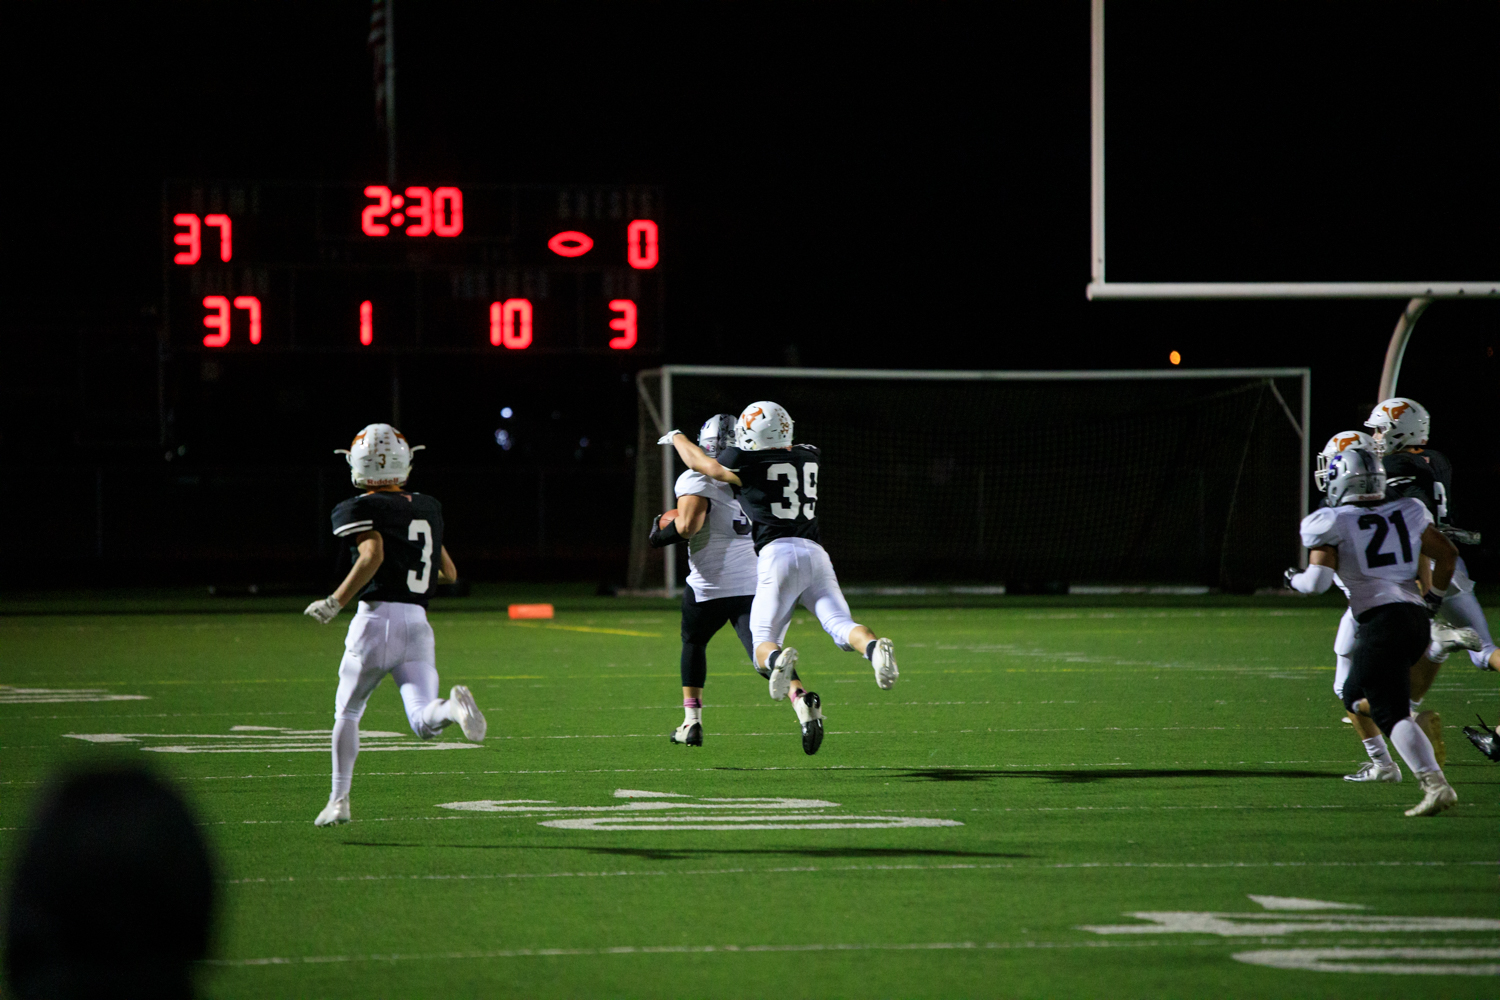 A+breakaway+touchdown+attempt+is+thwarted+by+%2339+Easton+Willyard+as+he+kicks+on+the+afterburners+and+tackles+Skyview%27s+%2333+from+behind.